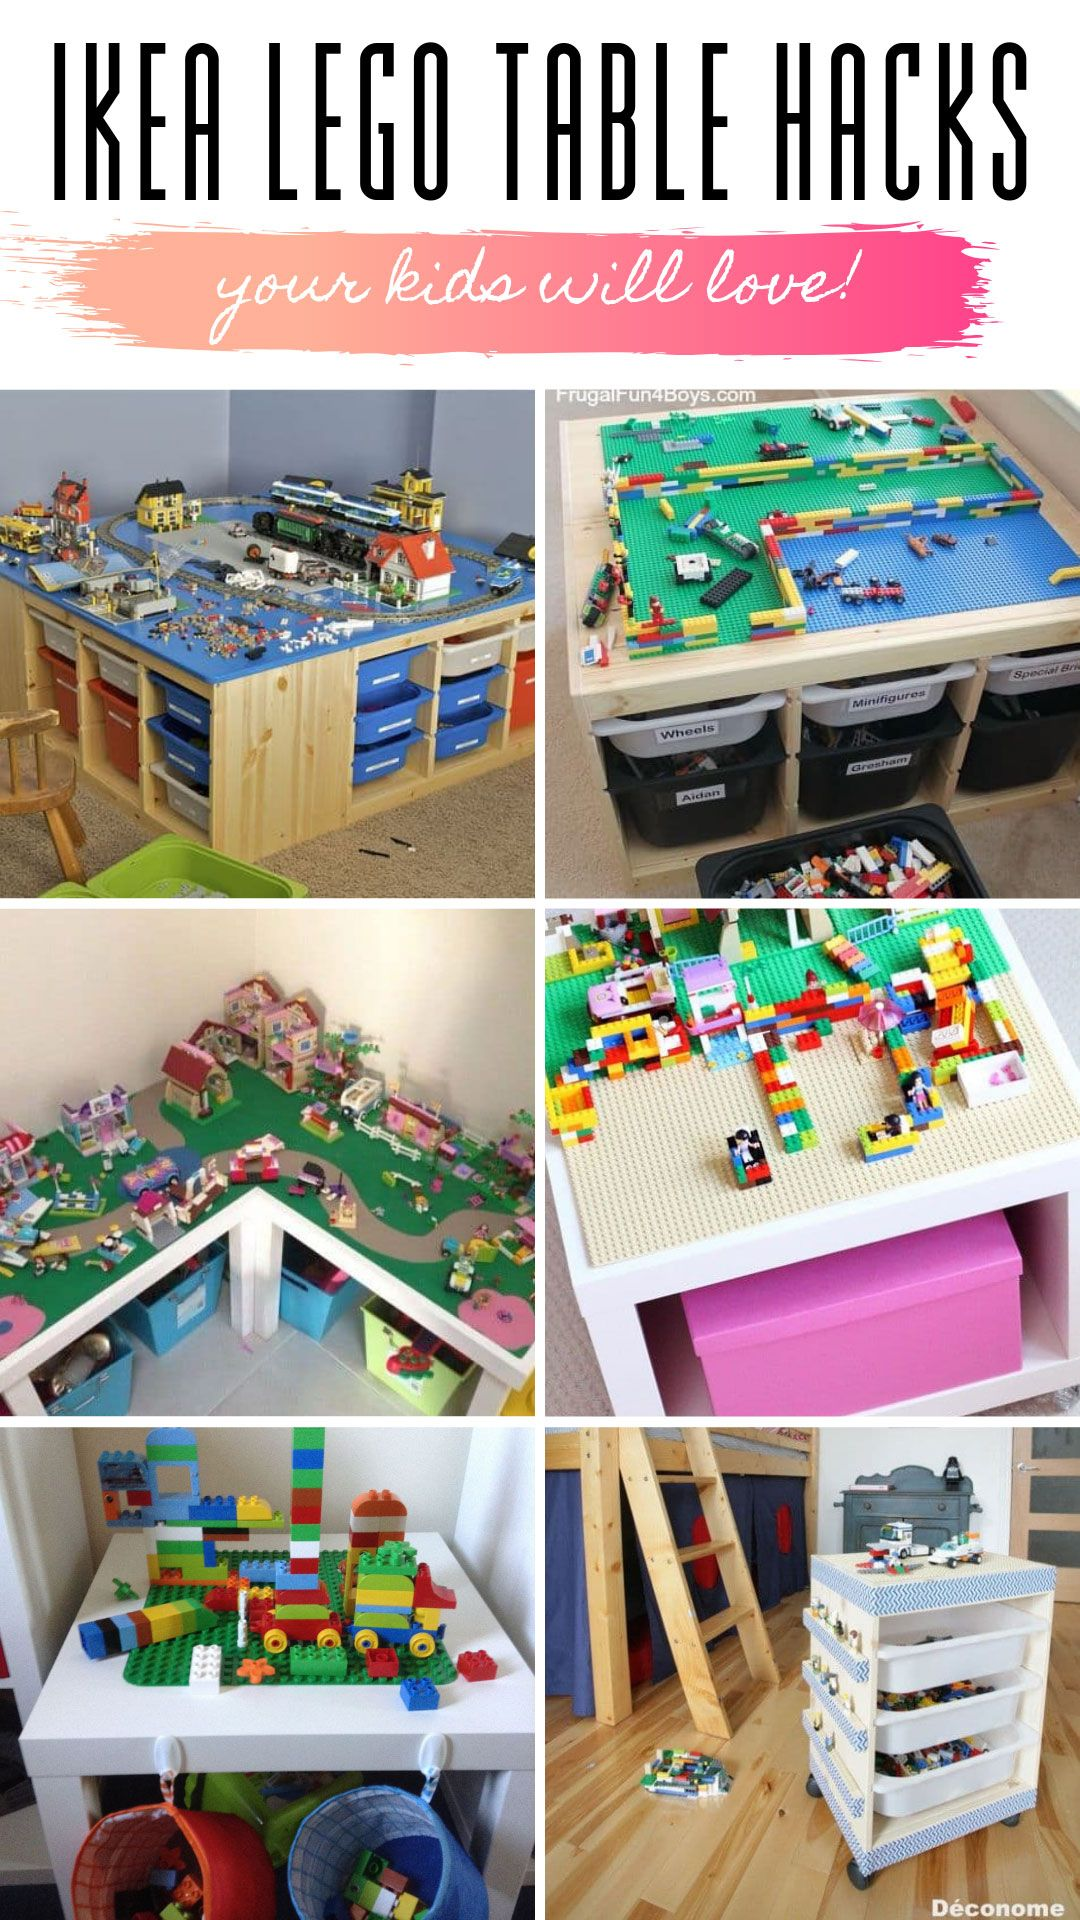 Genius IKEA LEGO Table Hacks You Kids Will Go Crazy Over